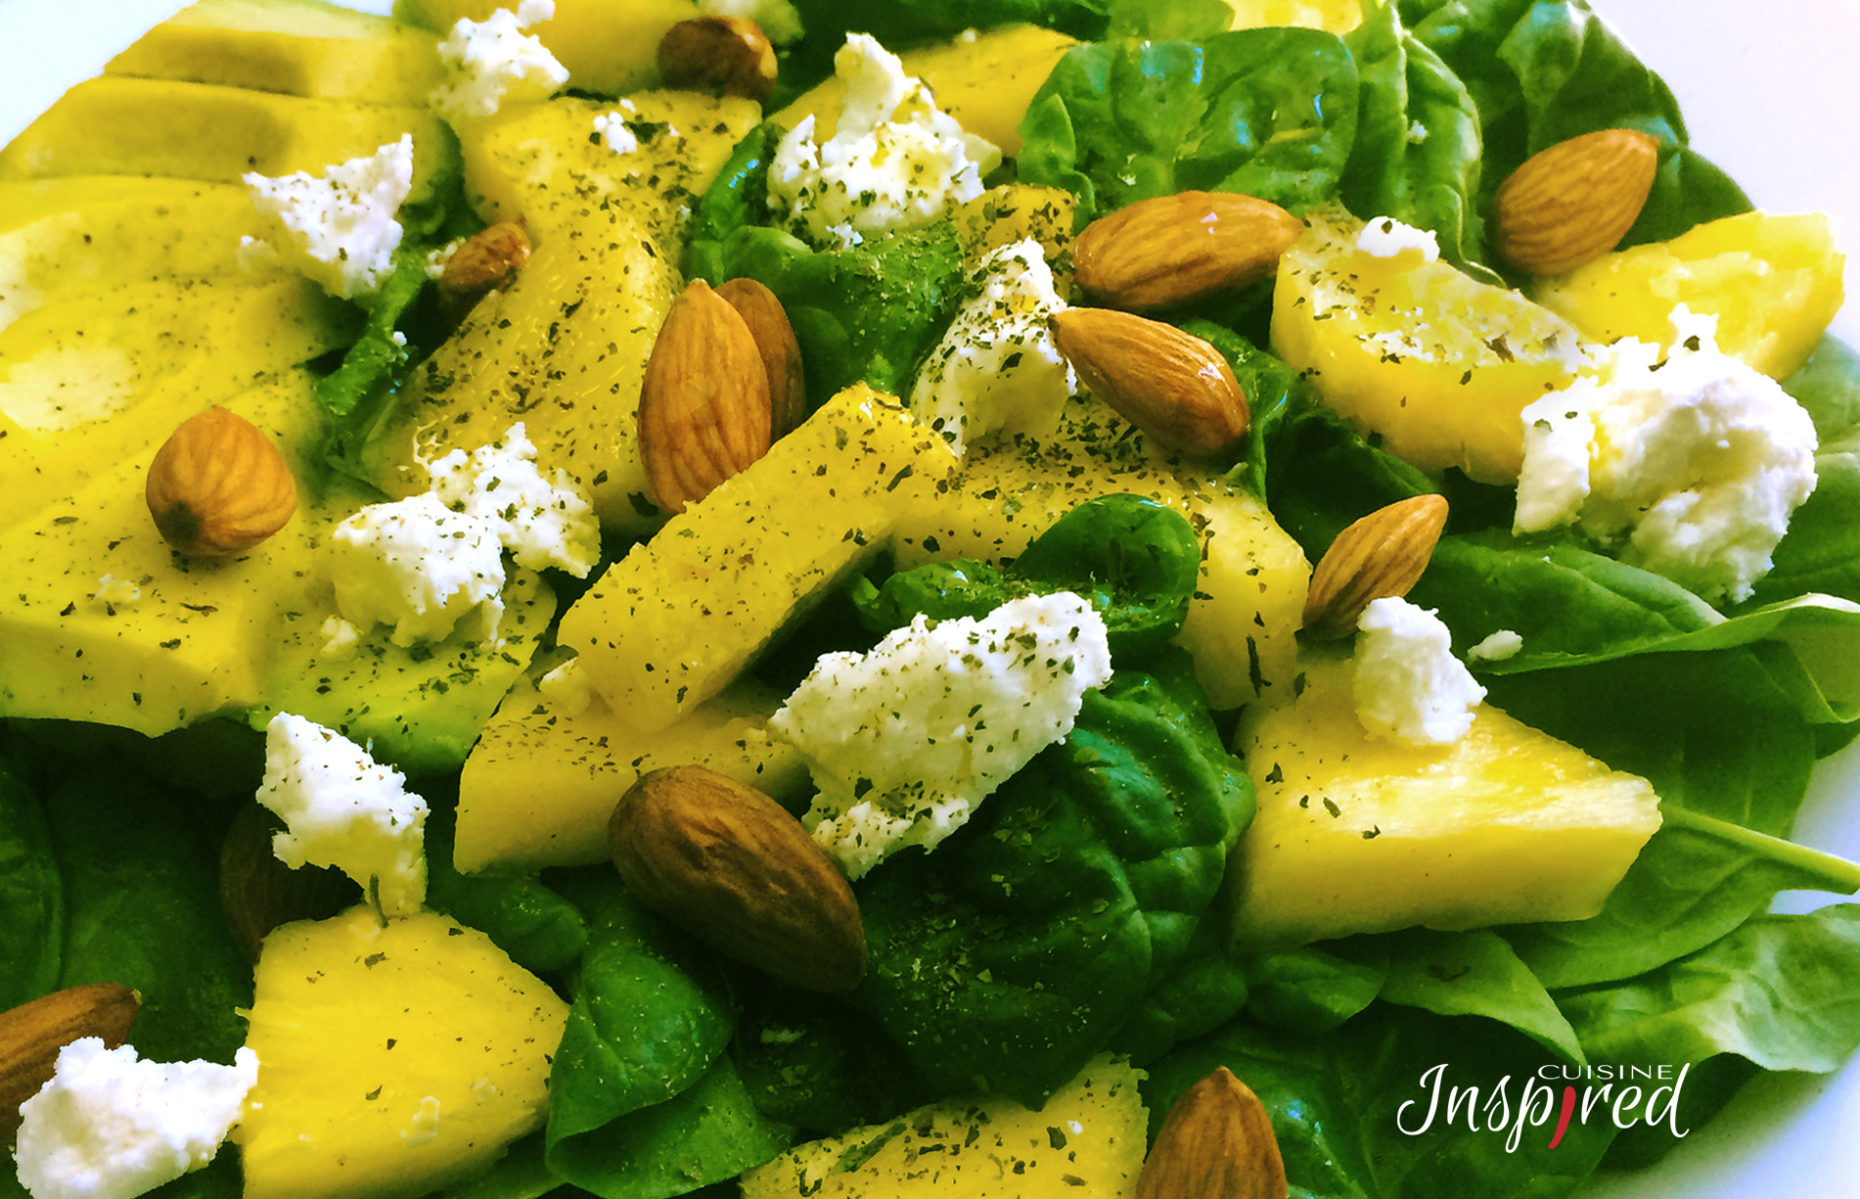 Baby Spinach, Avocado, Pineapple and Almond Salad with Goat Cheese and Simple Vinaigrette dressing